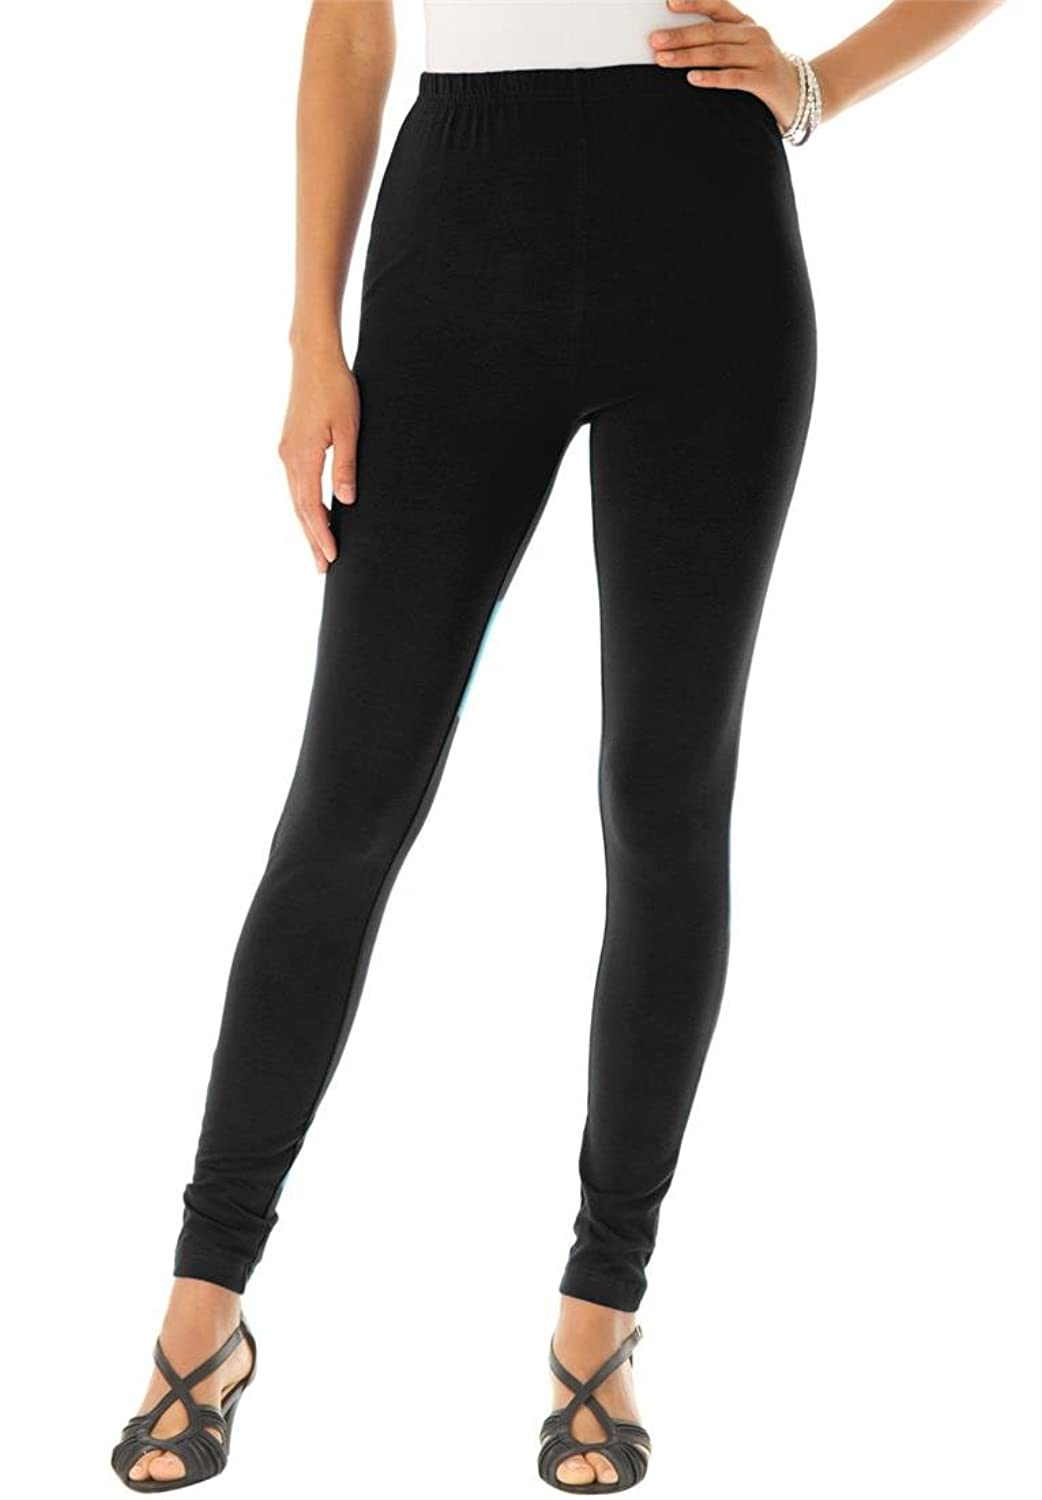 Women's Plus Size Tall Leggings In Stretch Knit at Amazon Women's ...